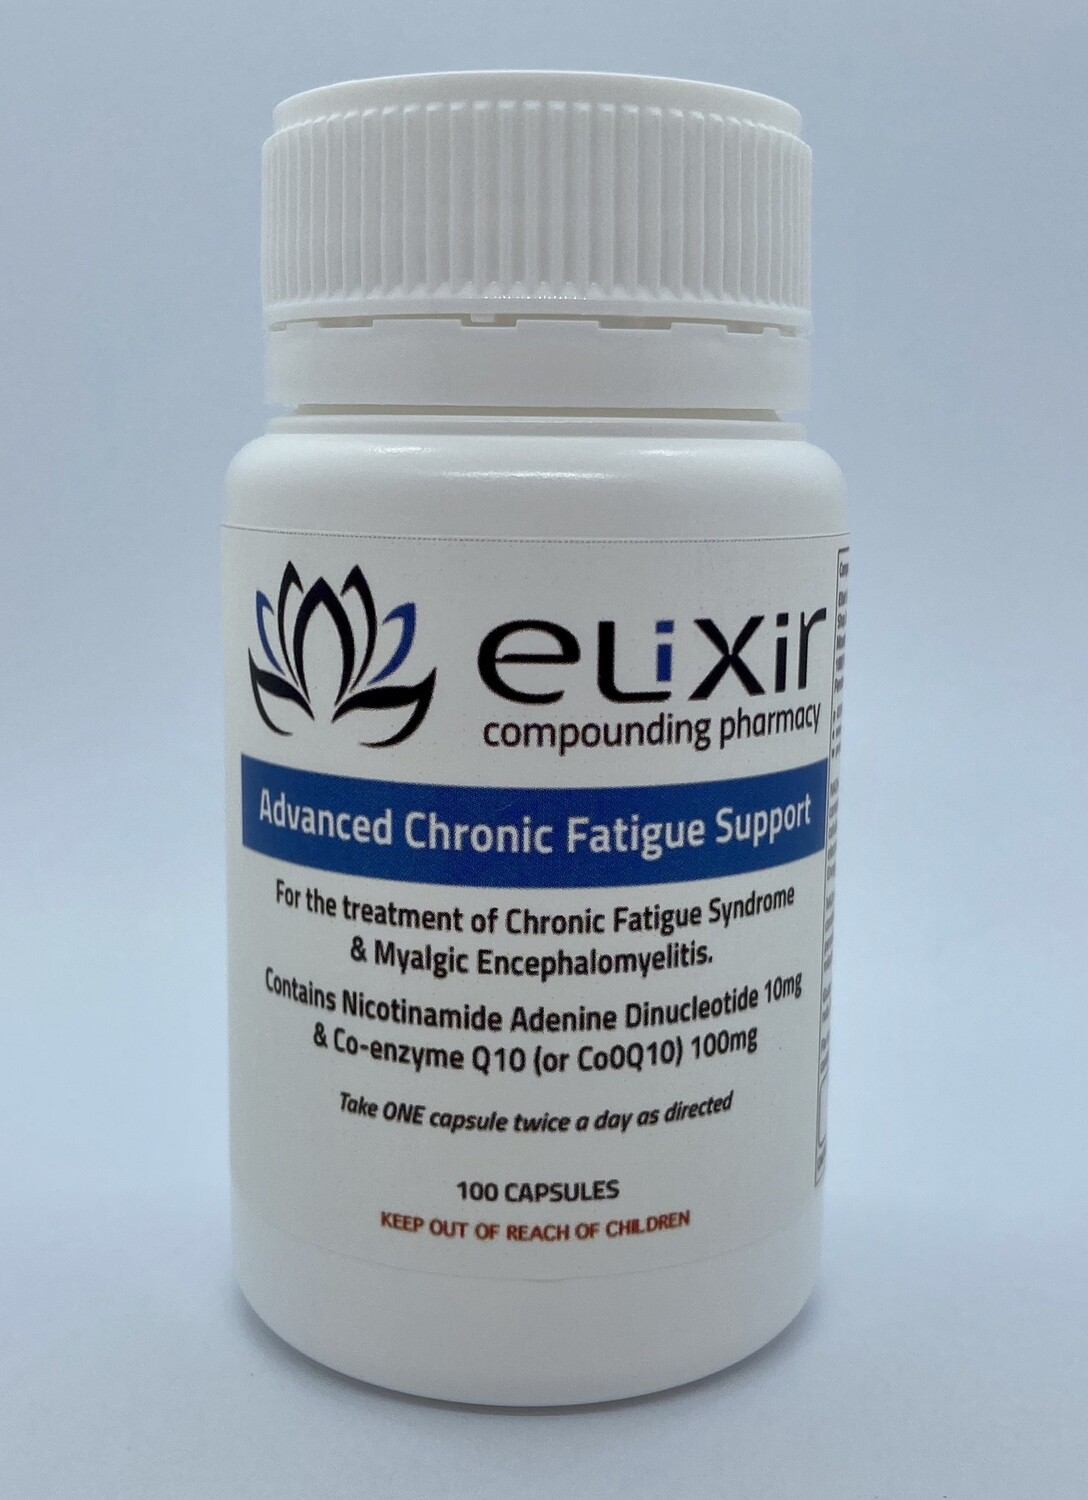 Advanced Chronic Fatigue Support